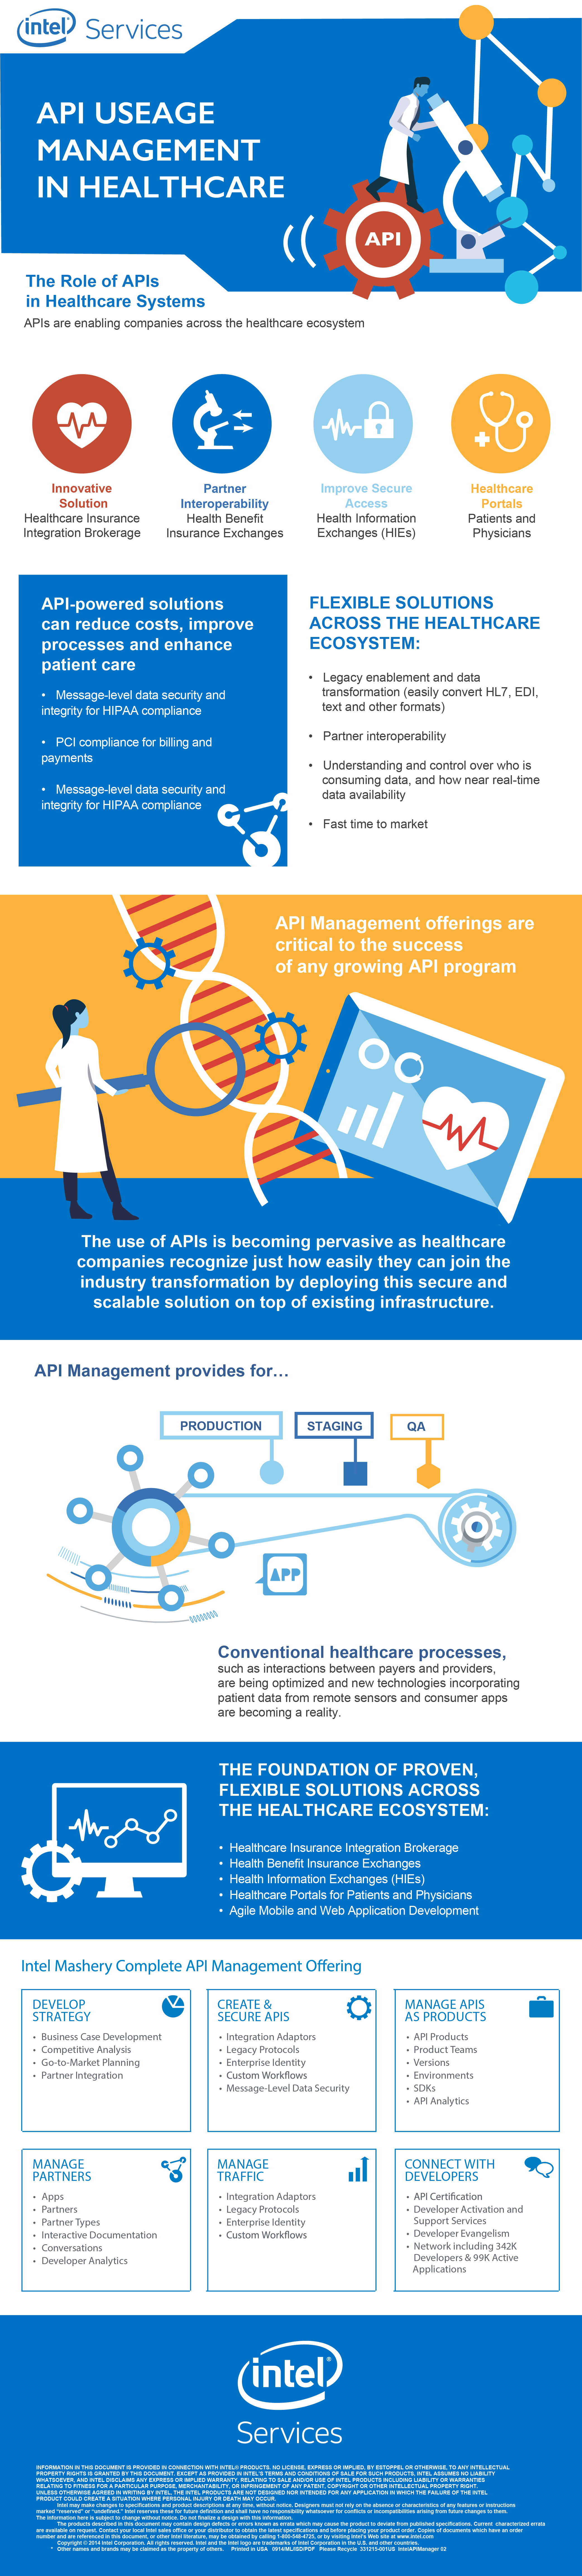 api-management-for-healthcare-02